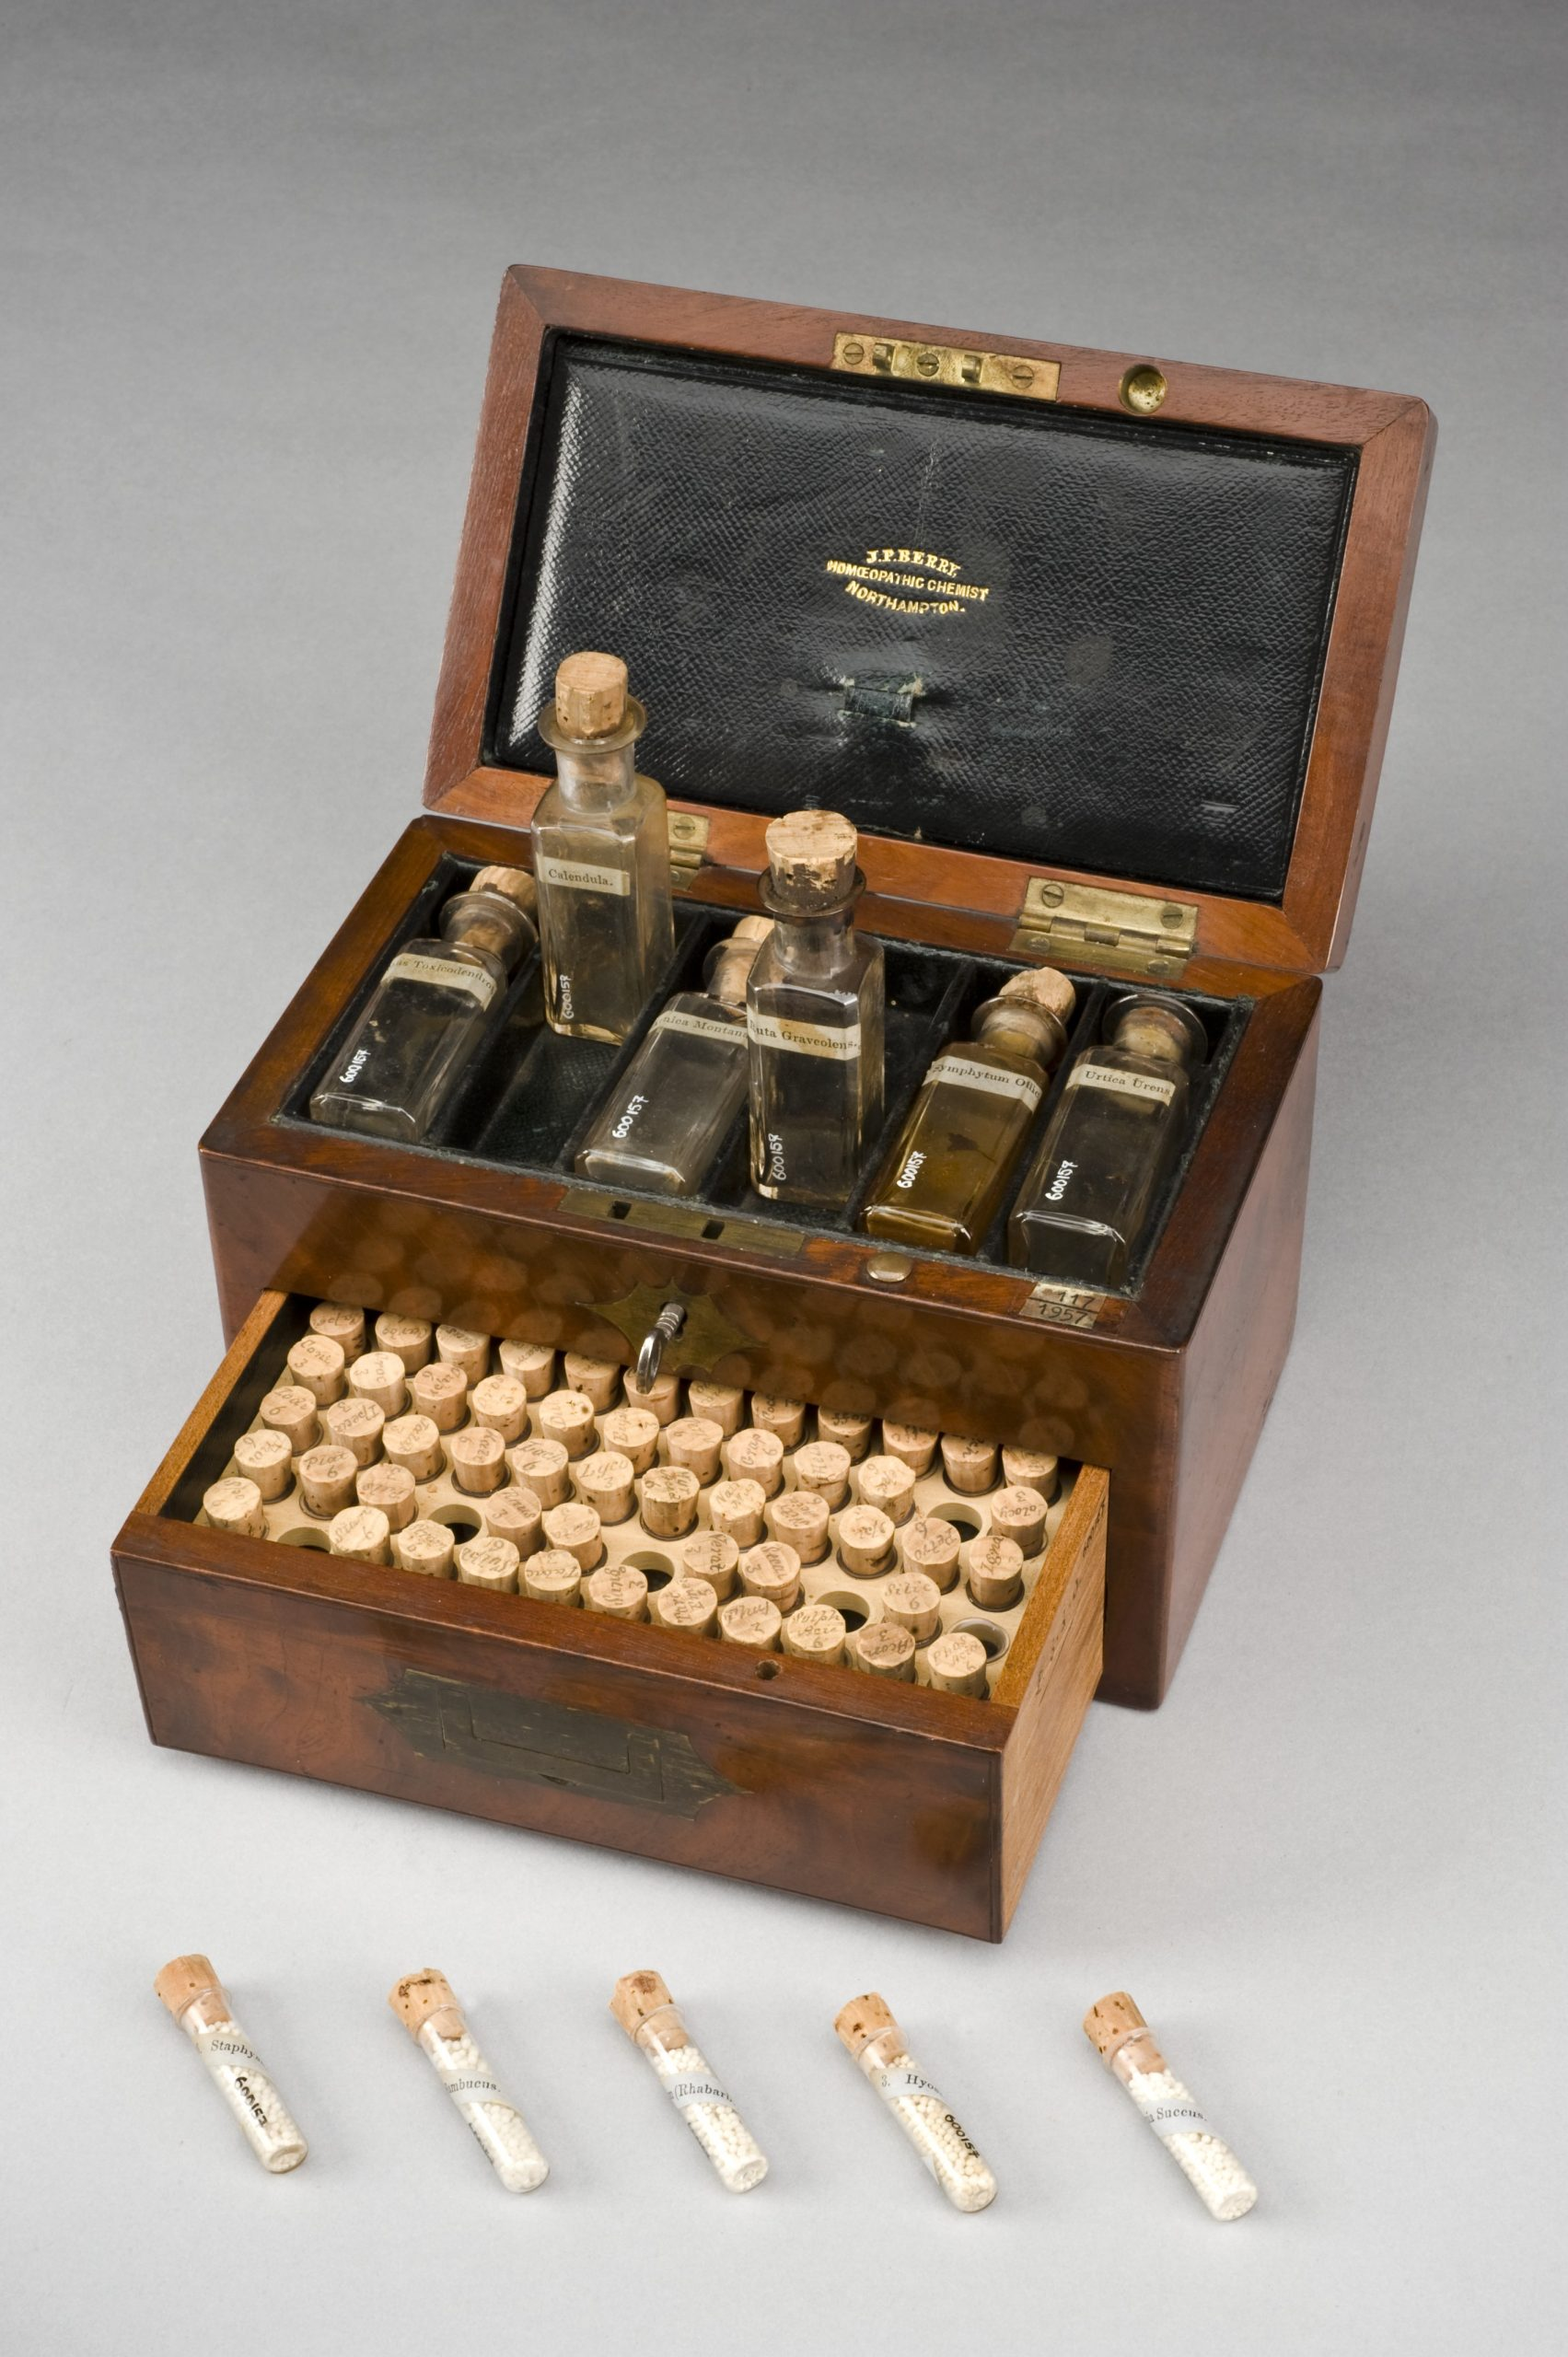 """L0057796 Homeopathic medicine chest, Northamptonshire, England, 1801- Credit: Science Museum, London. Wellcome Images images@wellcome.ac.uk http://wellcomeimages.org This mahogany medicine chest contains 69 small glass vials with handwritten labels and six large bottles. Homeopathy relies on the idea that 'like cures like'. For instance, if you are vomiting, your treatment will be something that causes vomiting but in a smaller, much diluted dose. One of the large bottles is labelled """"Urtica urens"""". This treatment is made from a dwarf stinging nettle and is used on burns and skin irritations, the same effect the plant has on the body.  maker: Berry, J P  Place made: Northampton, Northamptonshire, England, United Kingdom made: 1801-1900 Published:  -   Copyrighted work available under Creative Commons Attribution only licence CC BY 4.0 http://creativecommons.org/licenses/by/4.0/"""